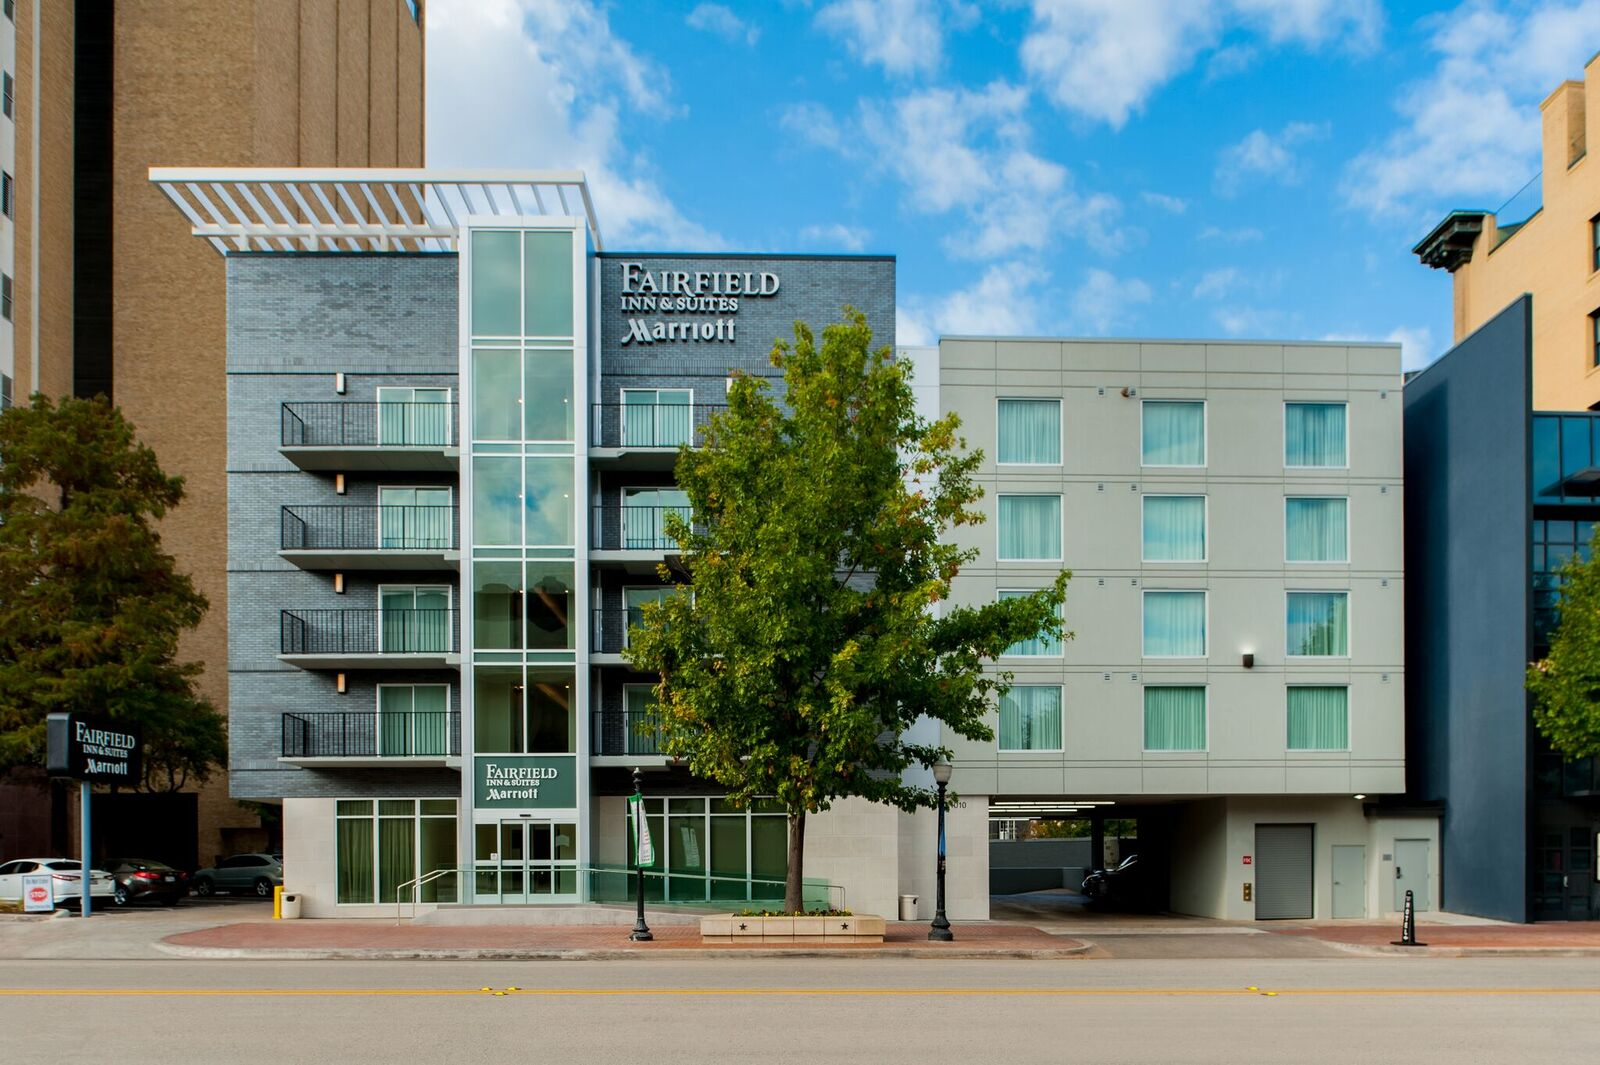 Fairfield Inn And Suites Fort Worth Downtown Tx 76102 6415